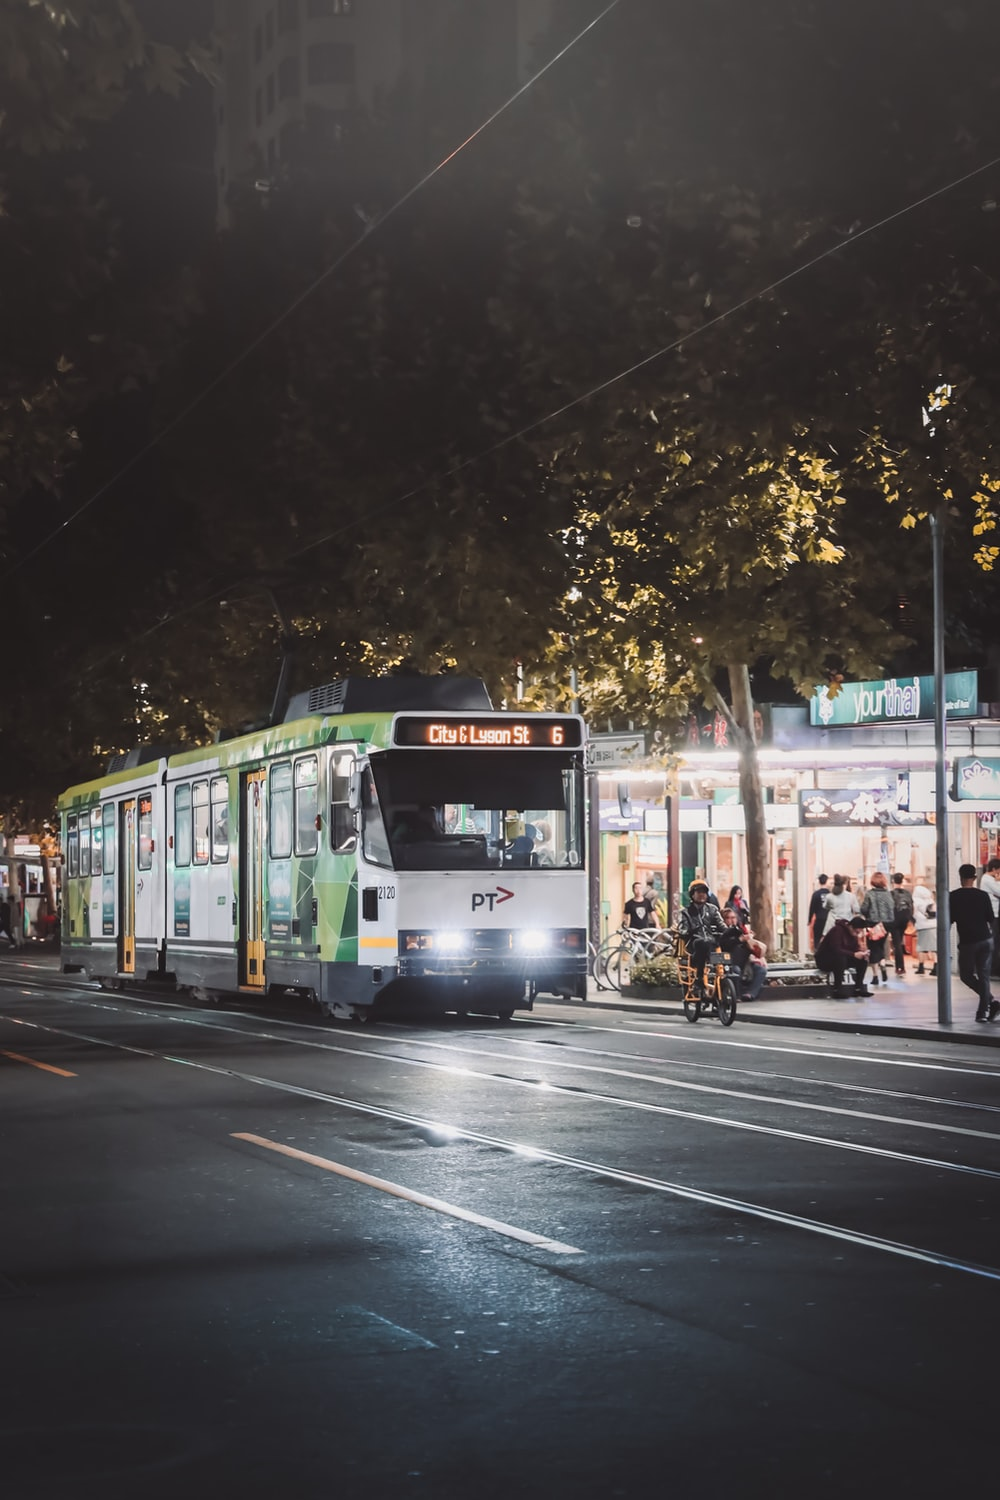 people walking on street near green and white tram during night time